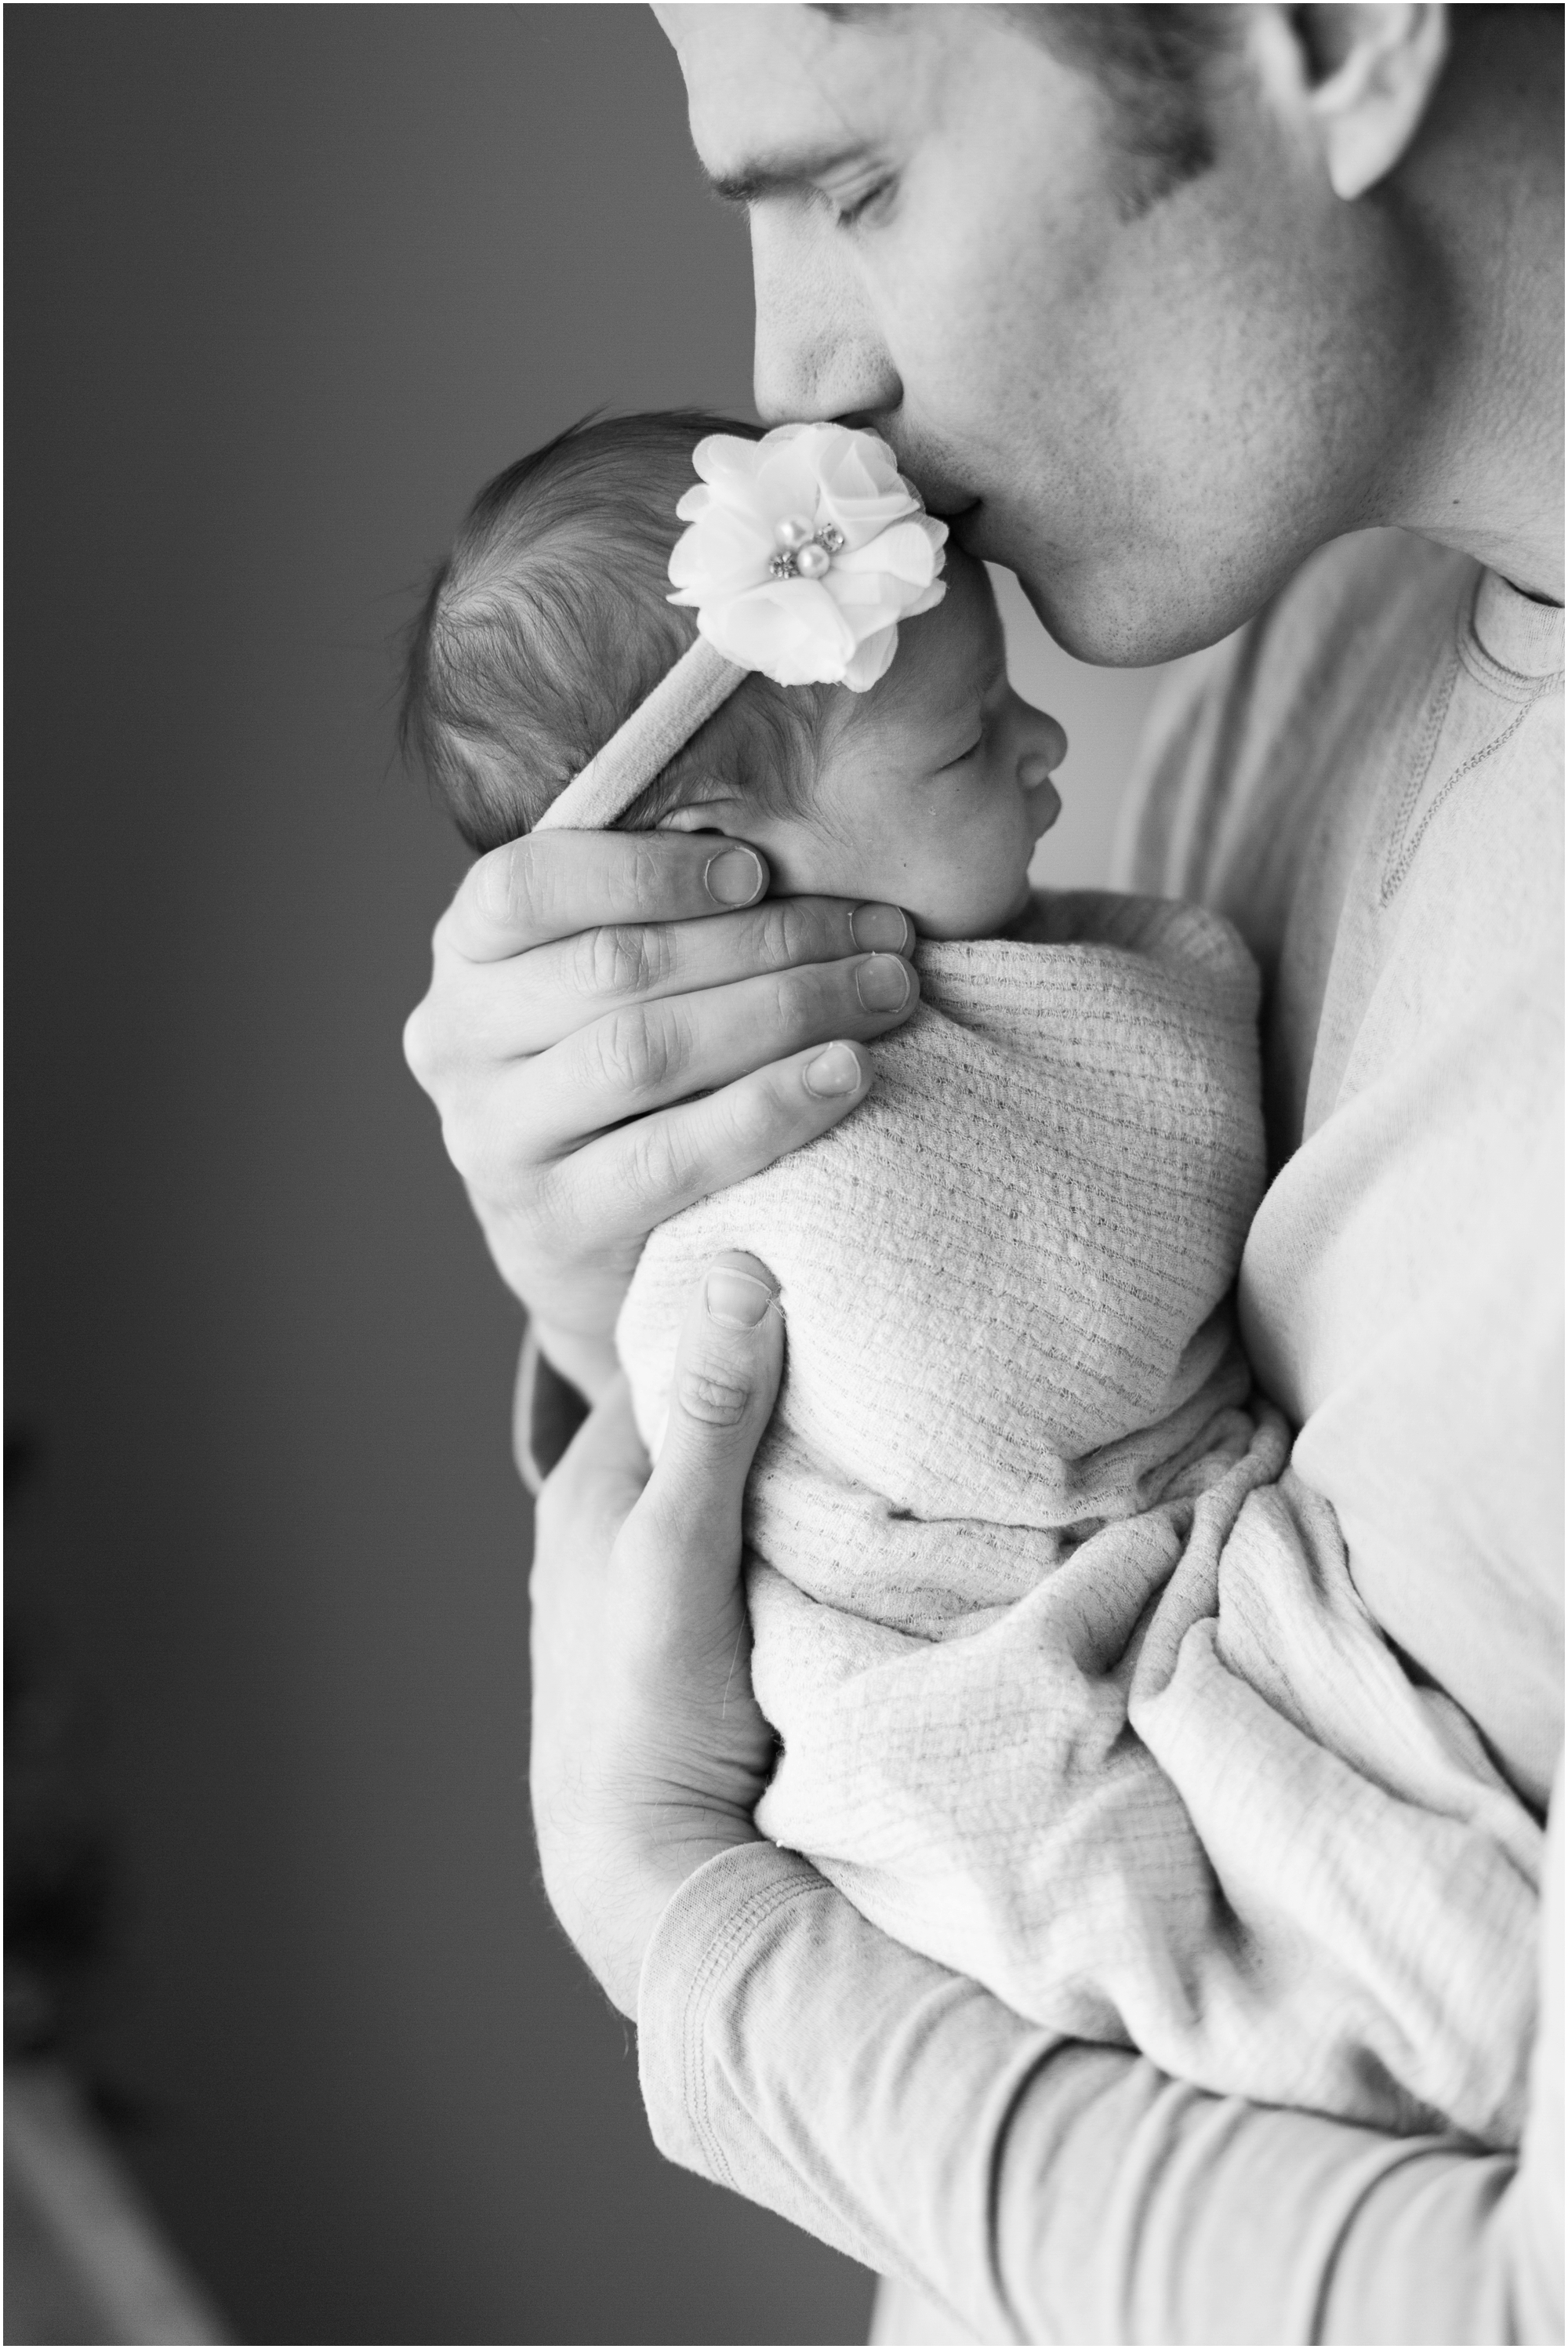 Lifestyle newborn photos by Briana Calderon Photography based in the Greater Seattle & Tacoma, WA_1080.jpg